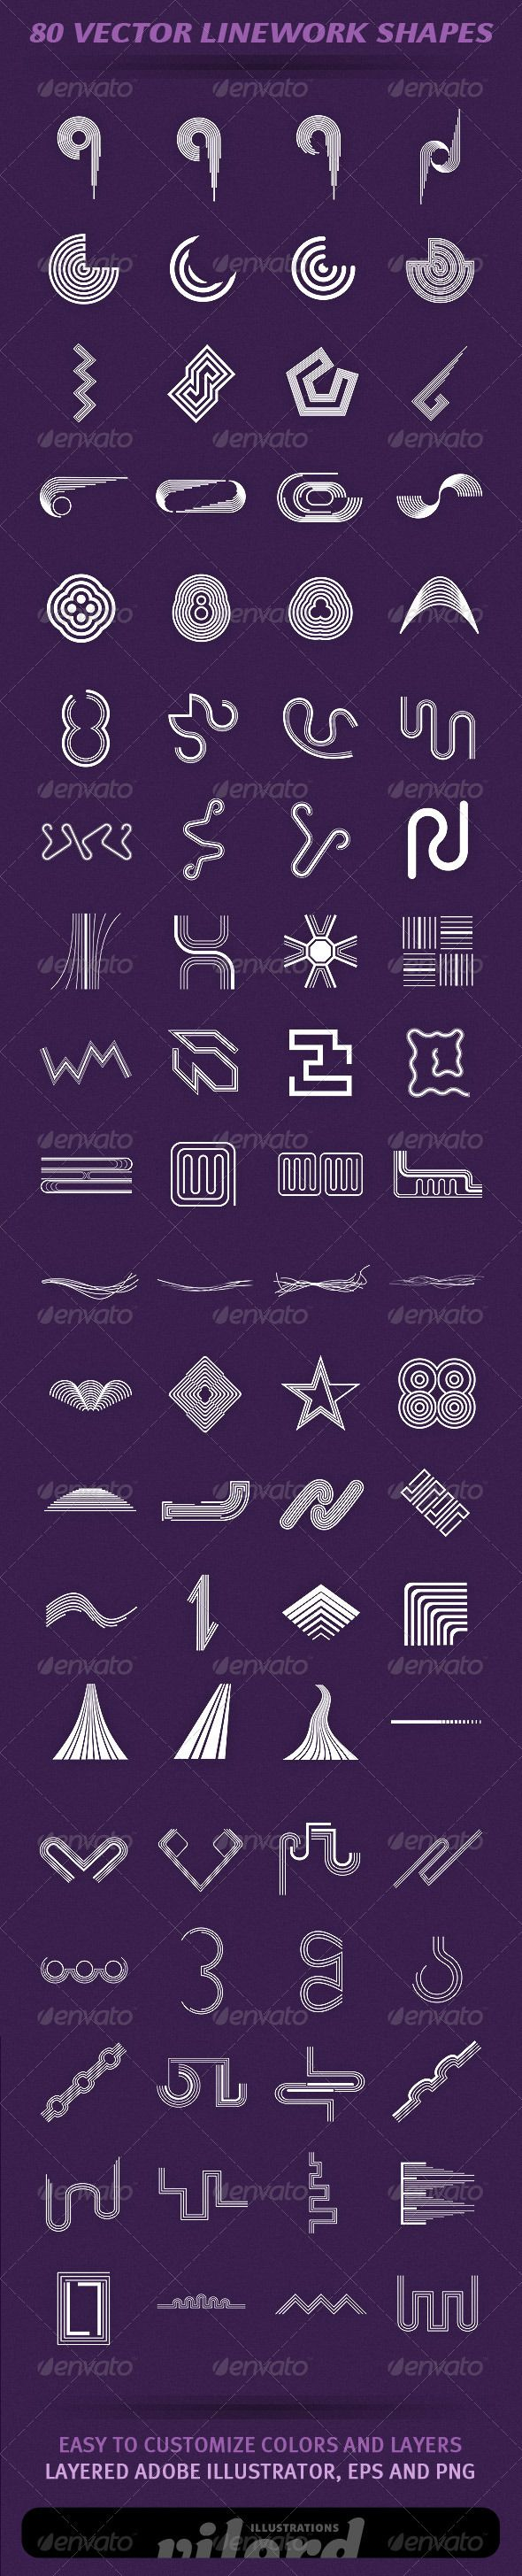 80 Vector Linework Shapes